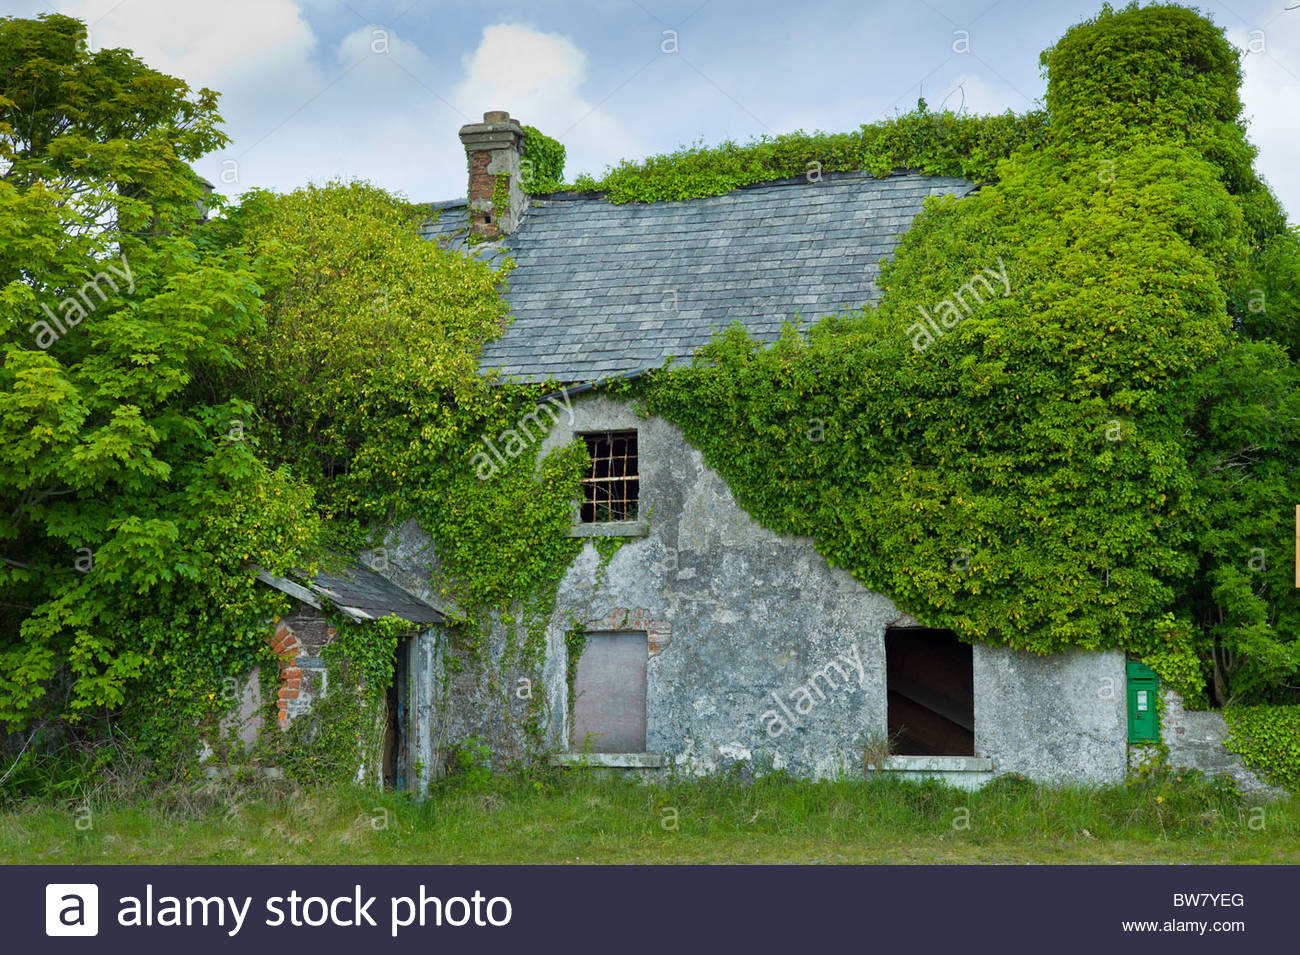 Derelict Cottage For Sale In Need Of Renovation Covered